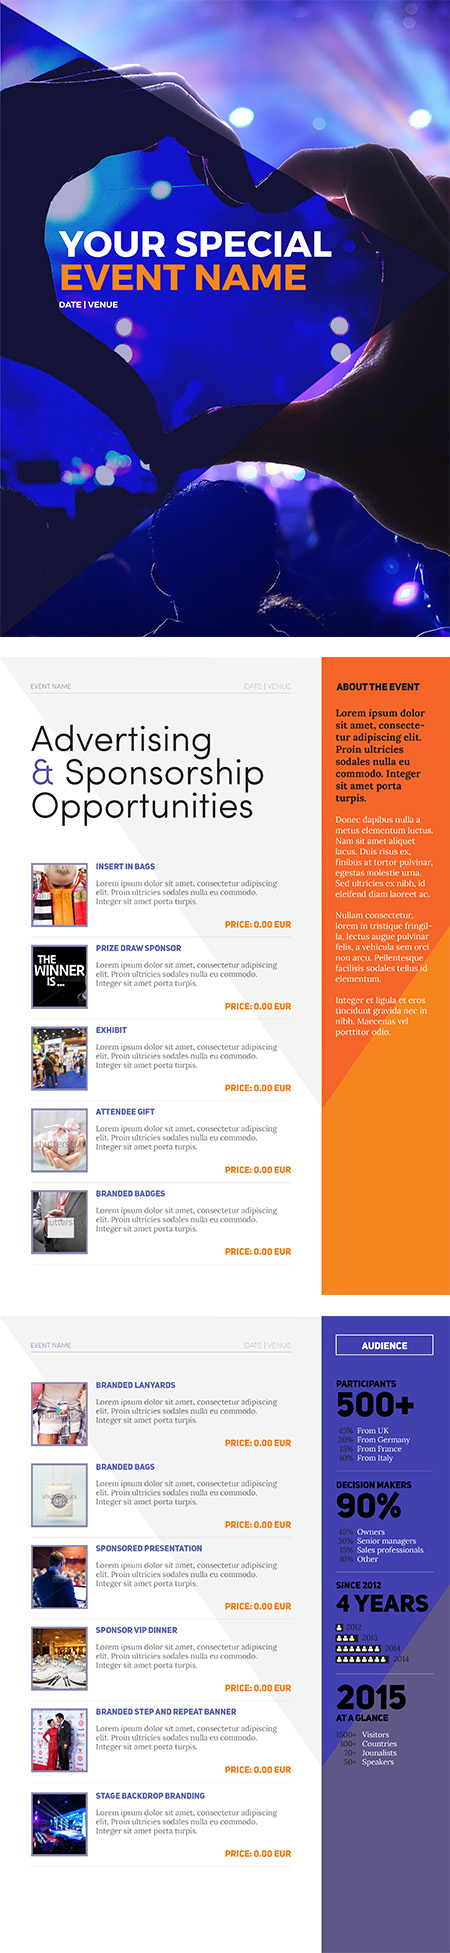 Sponsorship Package Template | Event Management Tips | Pinterest ...